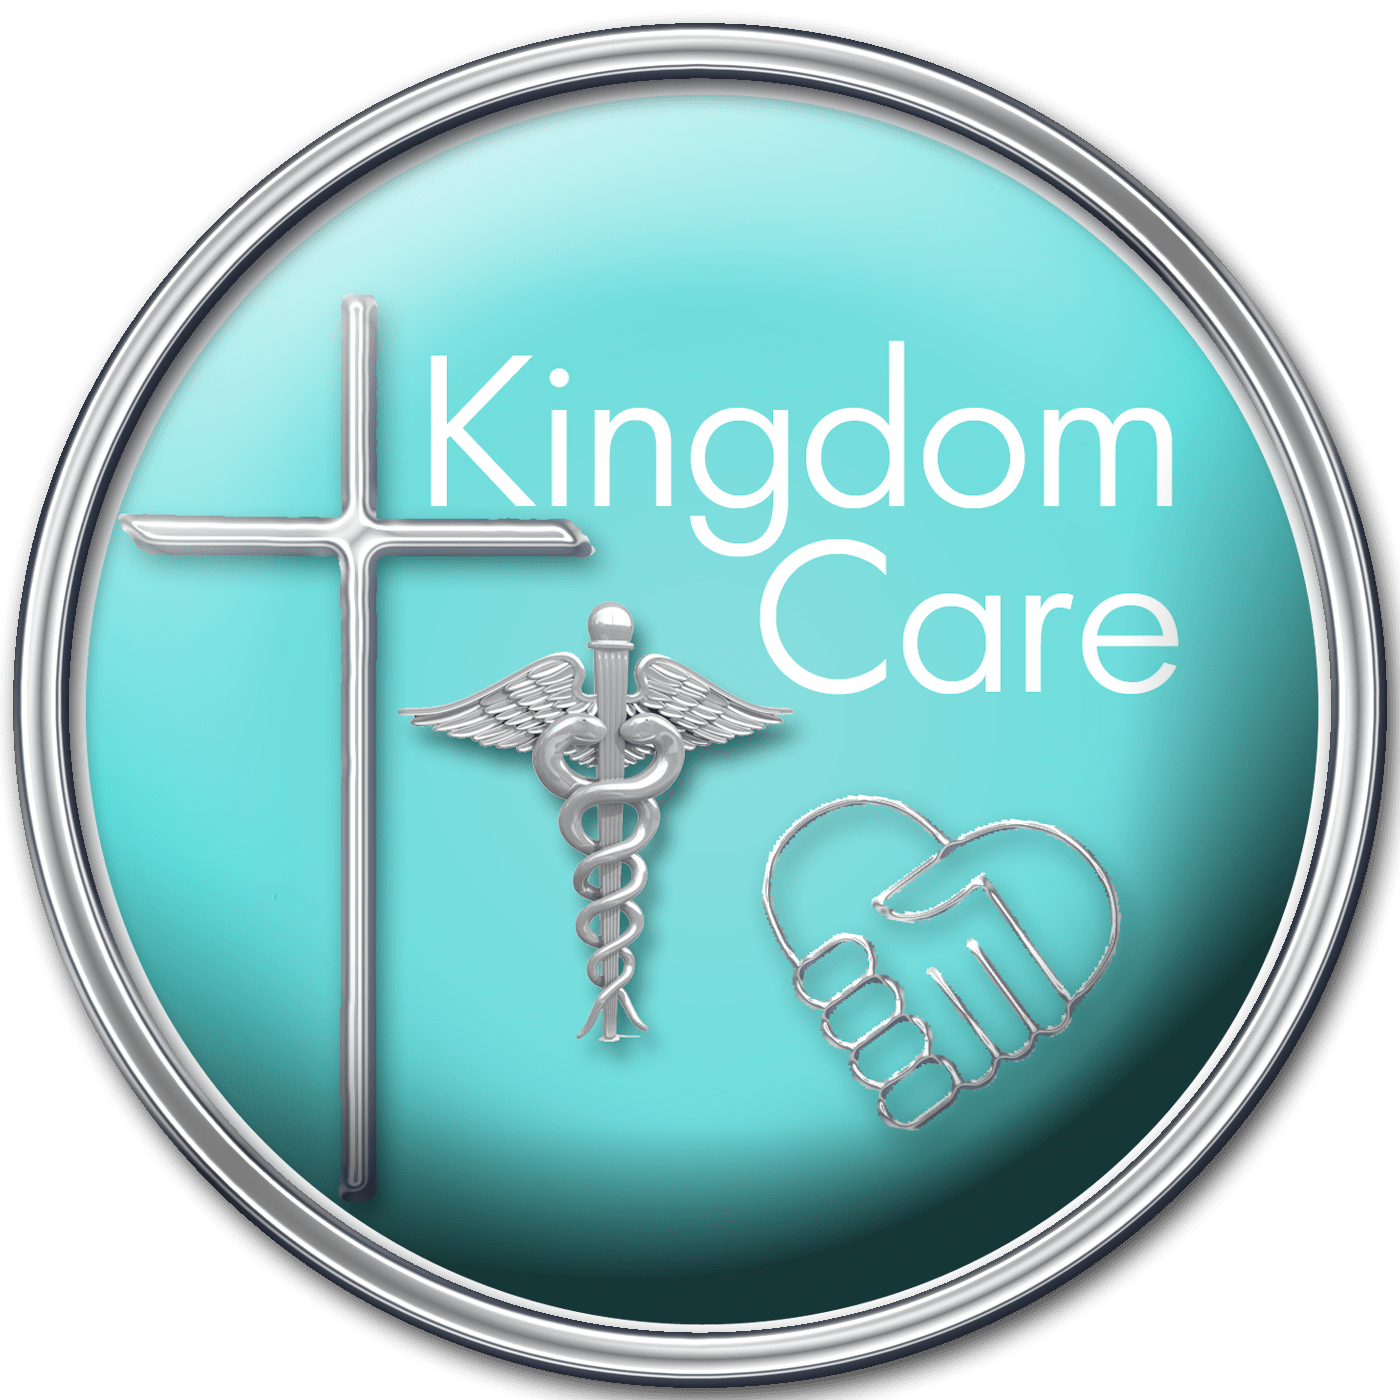 Kingdom Care, Inc